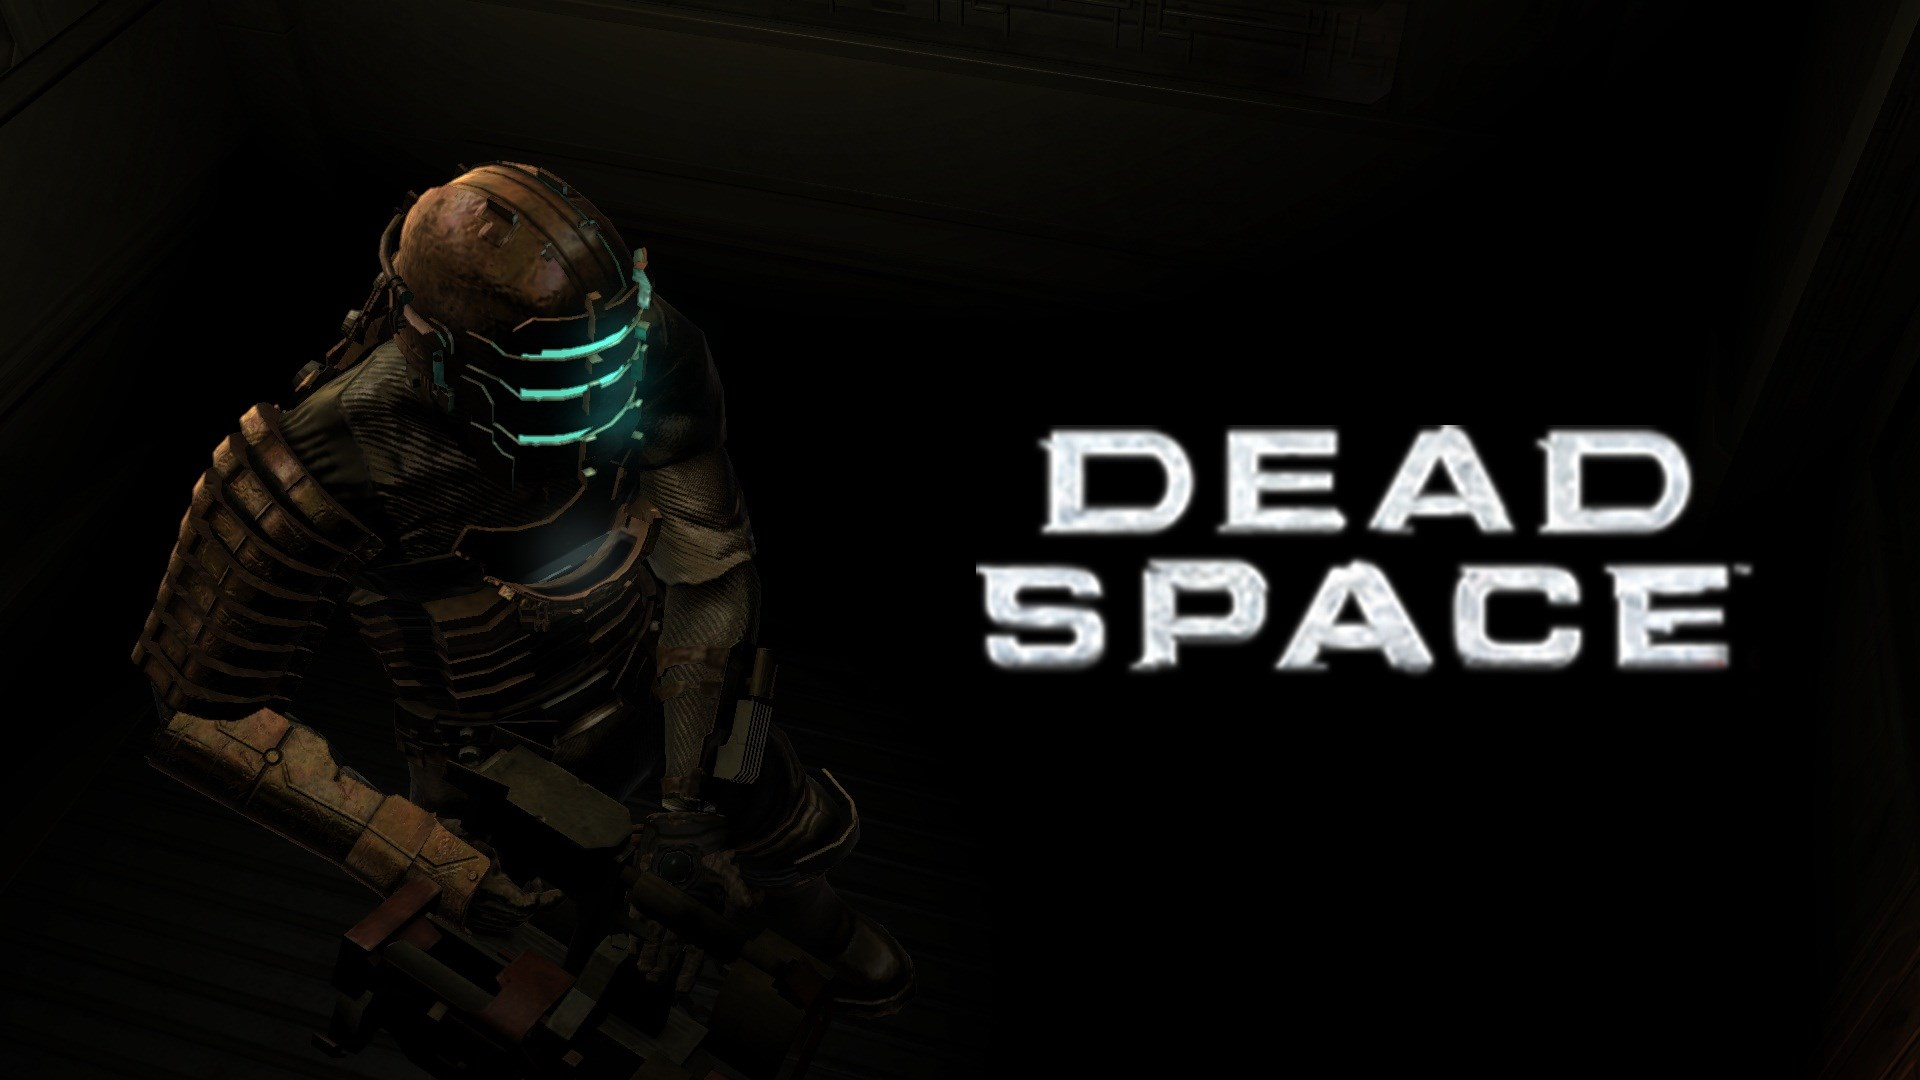 dead-space-hd-1080p-windows-wallpaper-wp3404502